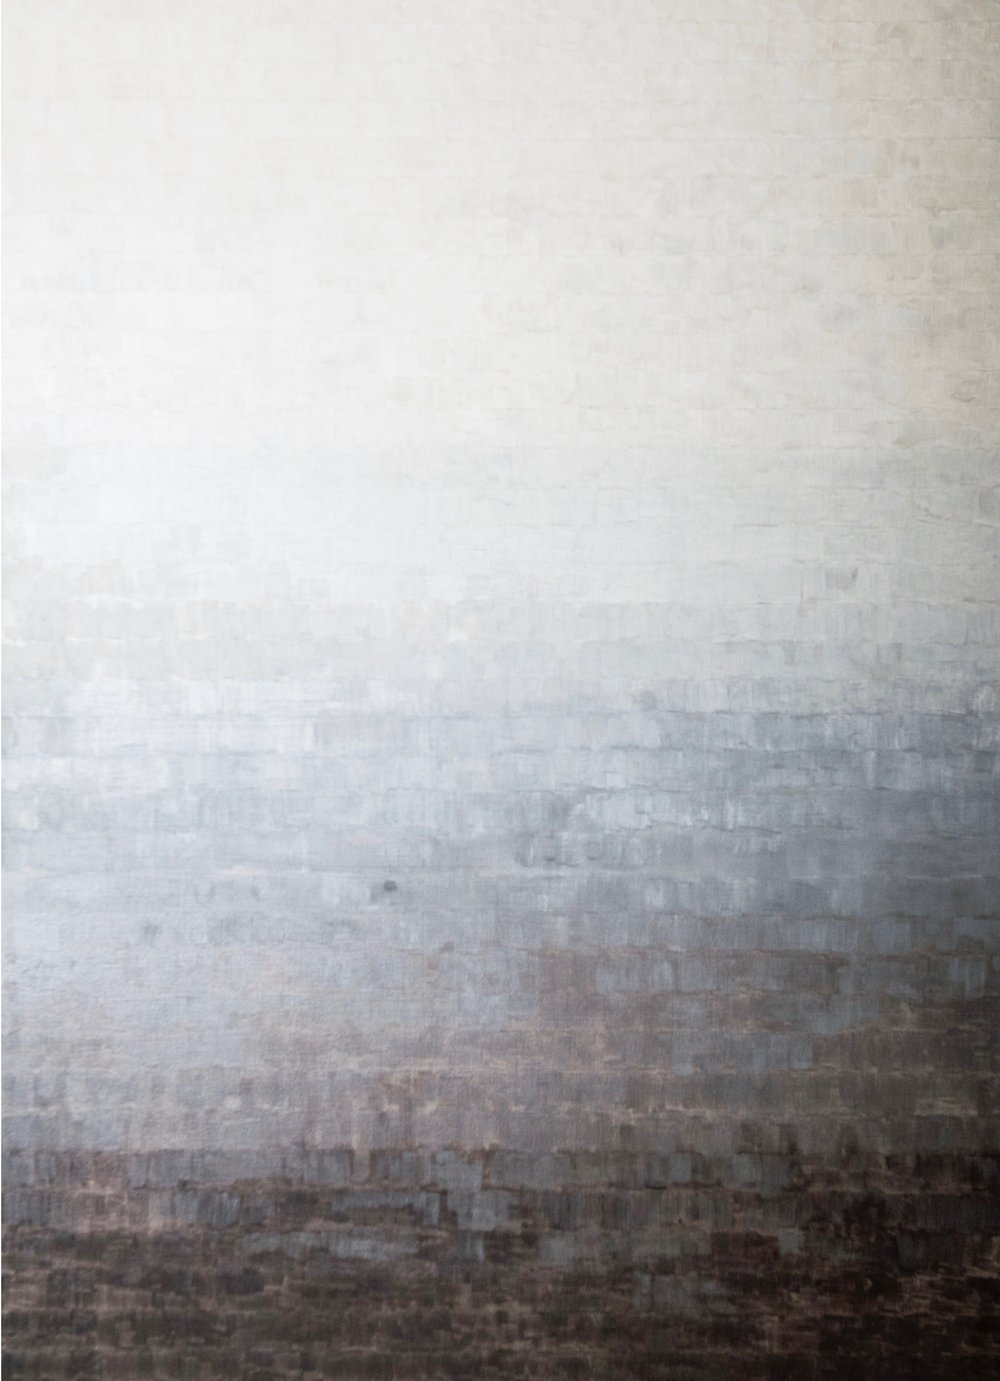 S-240,  2017, oil on canvas, 72 x 52 inches